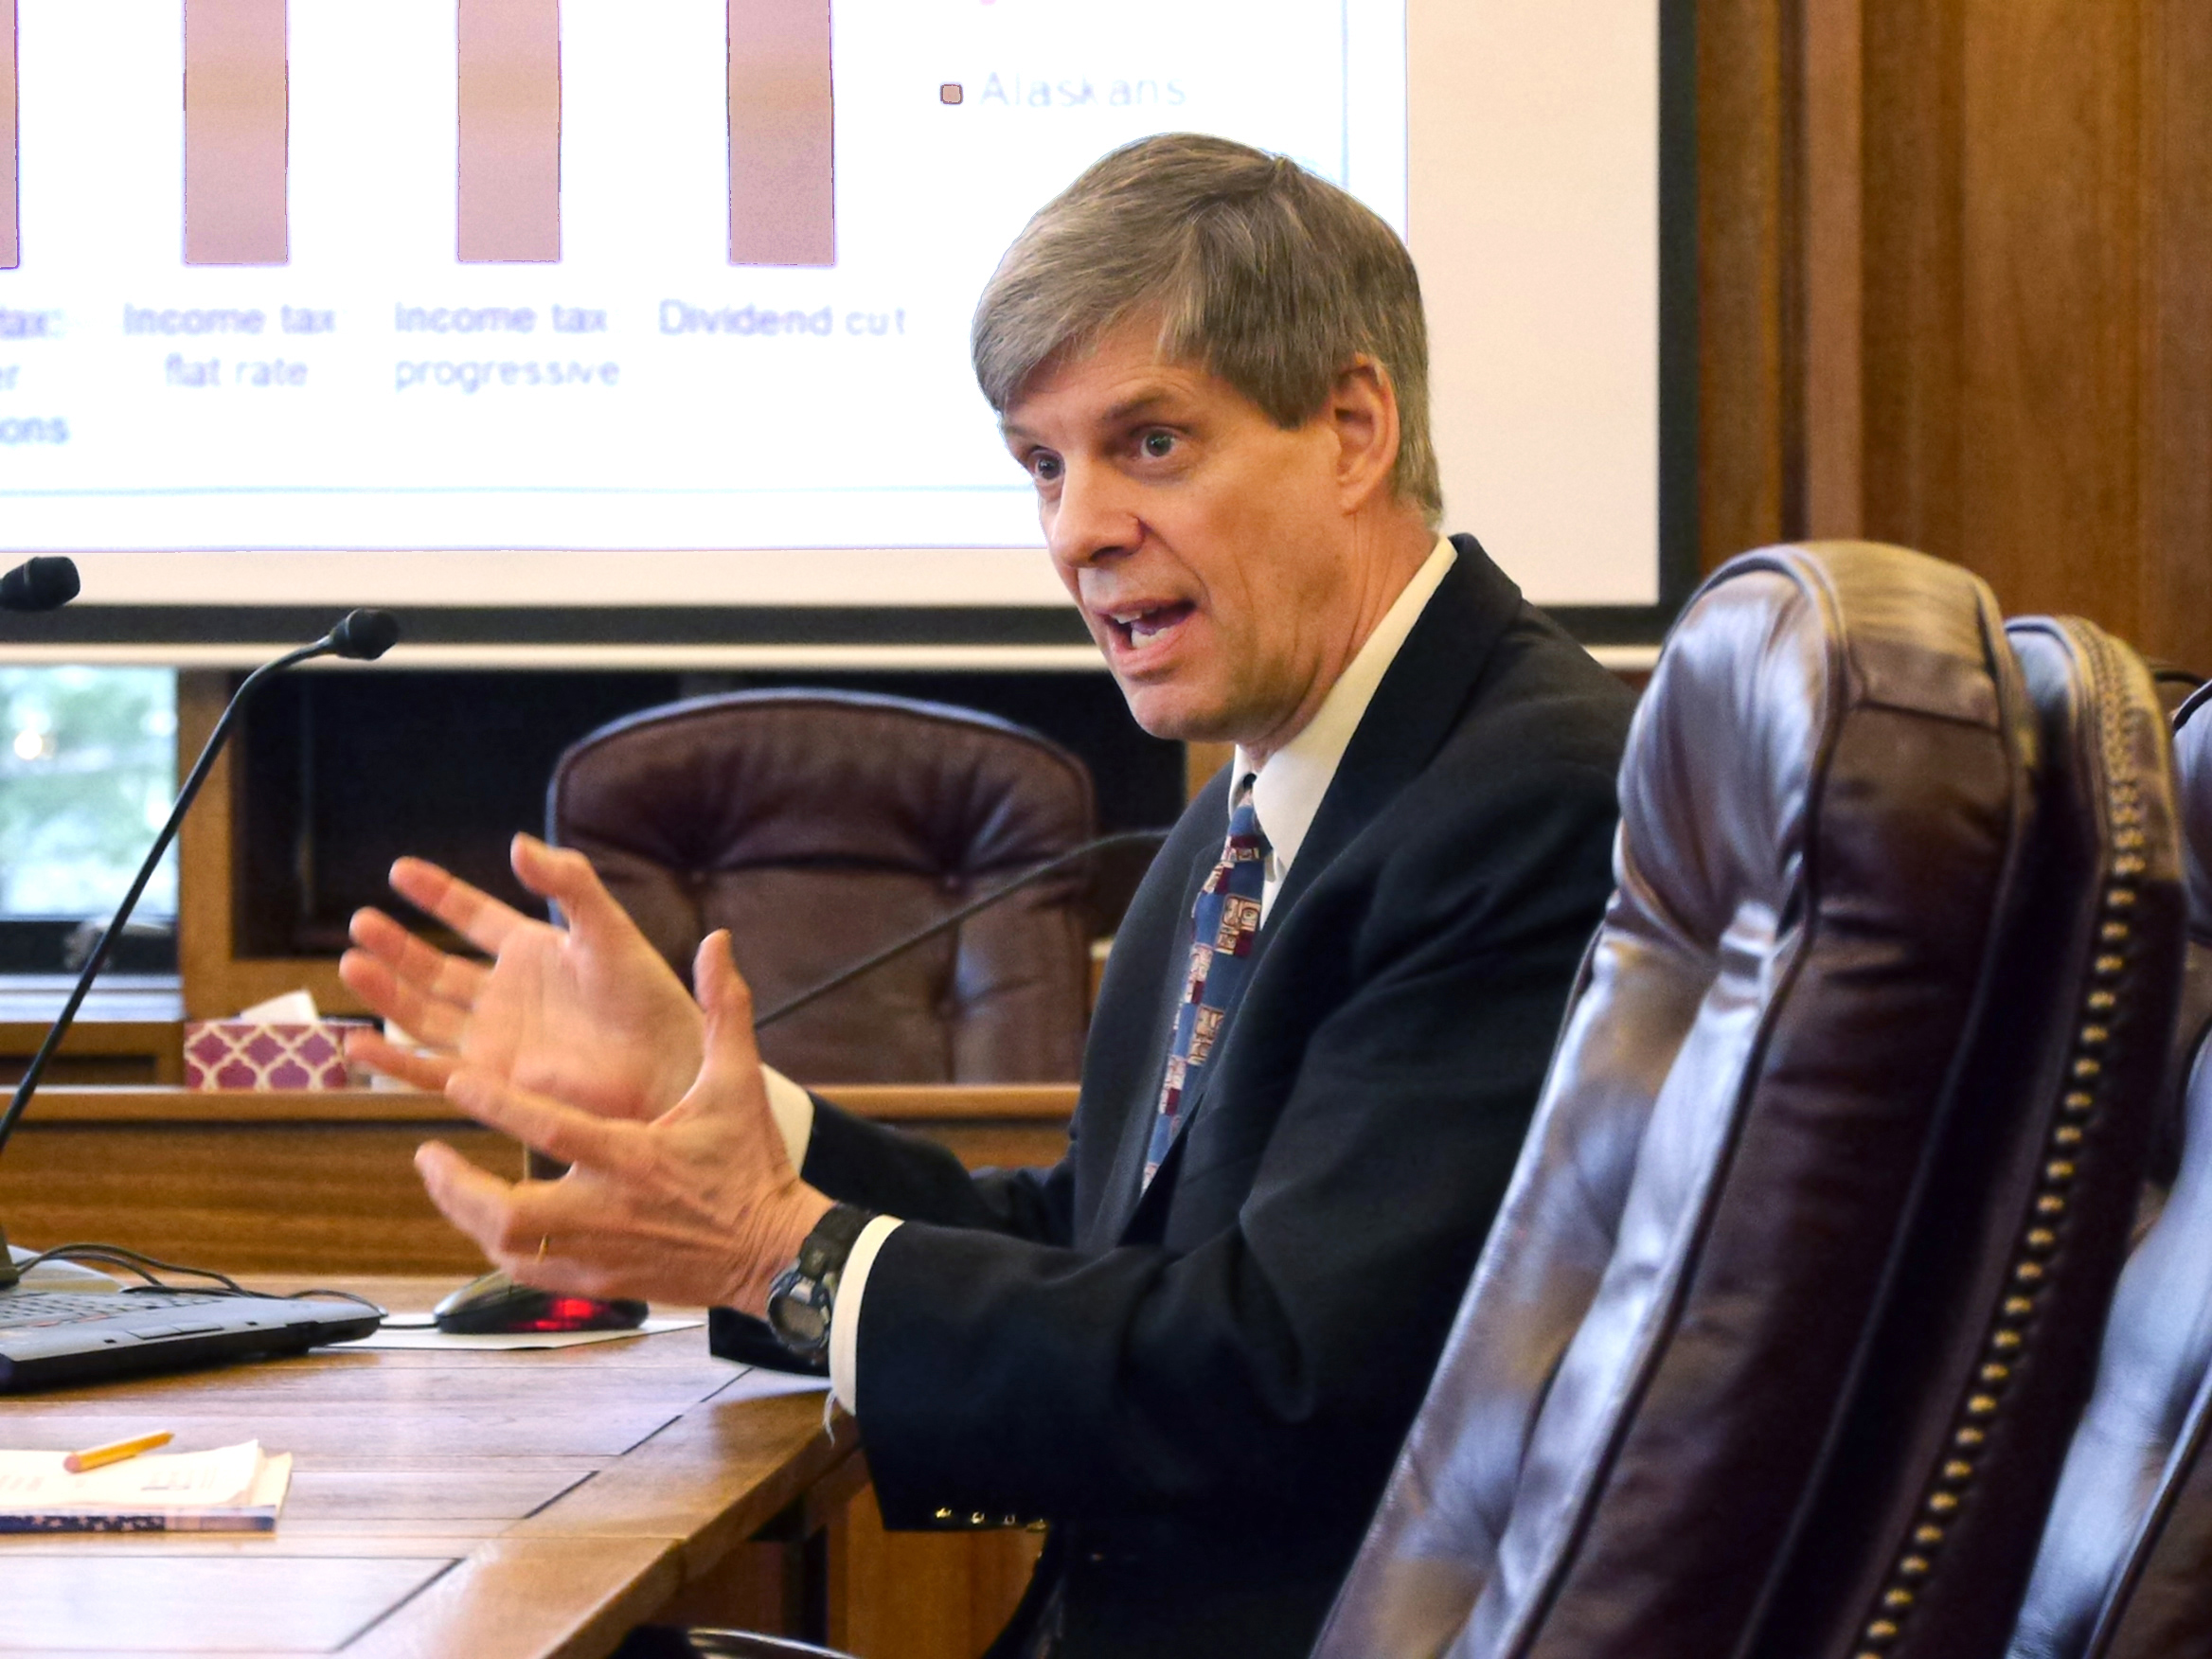 Institute of Social and Economic Research Director Gunnar Knapp presents possible economic effects of state budget proposals to the Houses Finance Committee, Feb. 25, 2016. (Photo by Skip Gray/360 North)